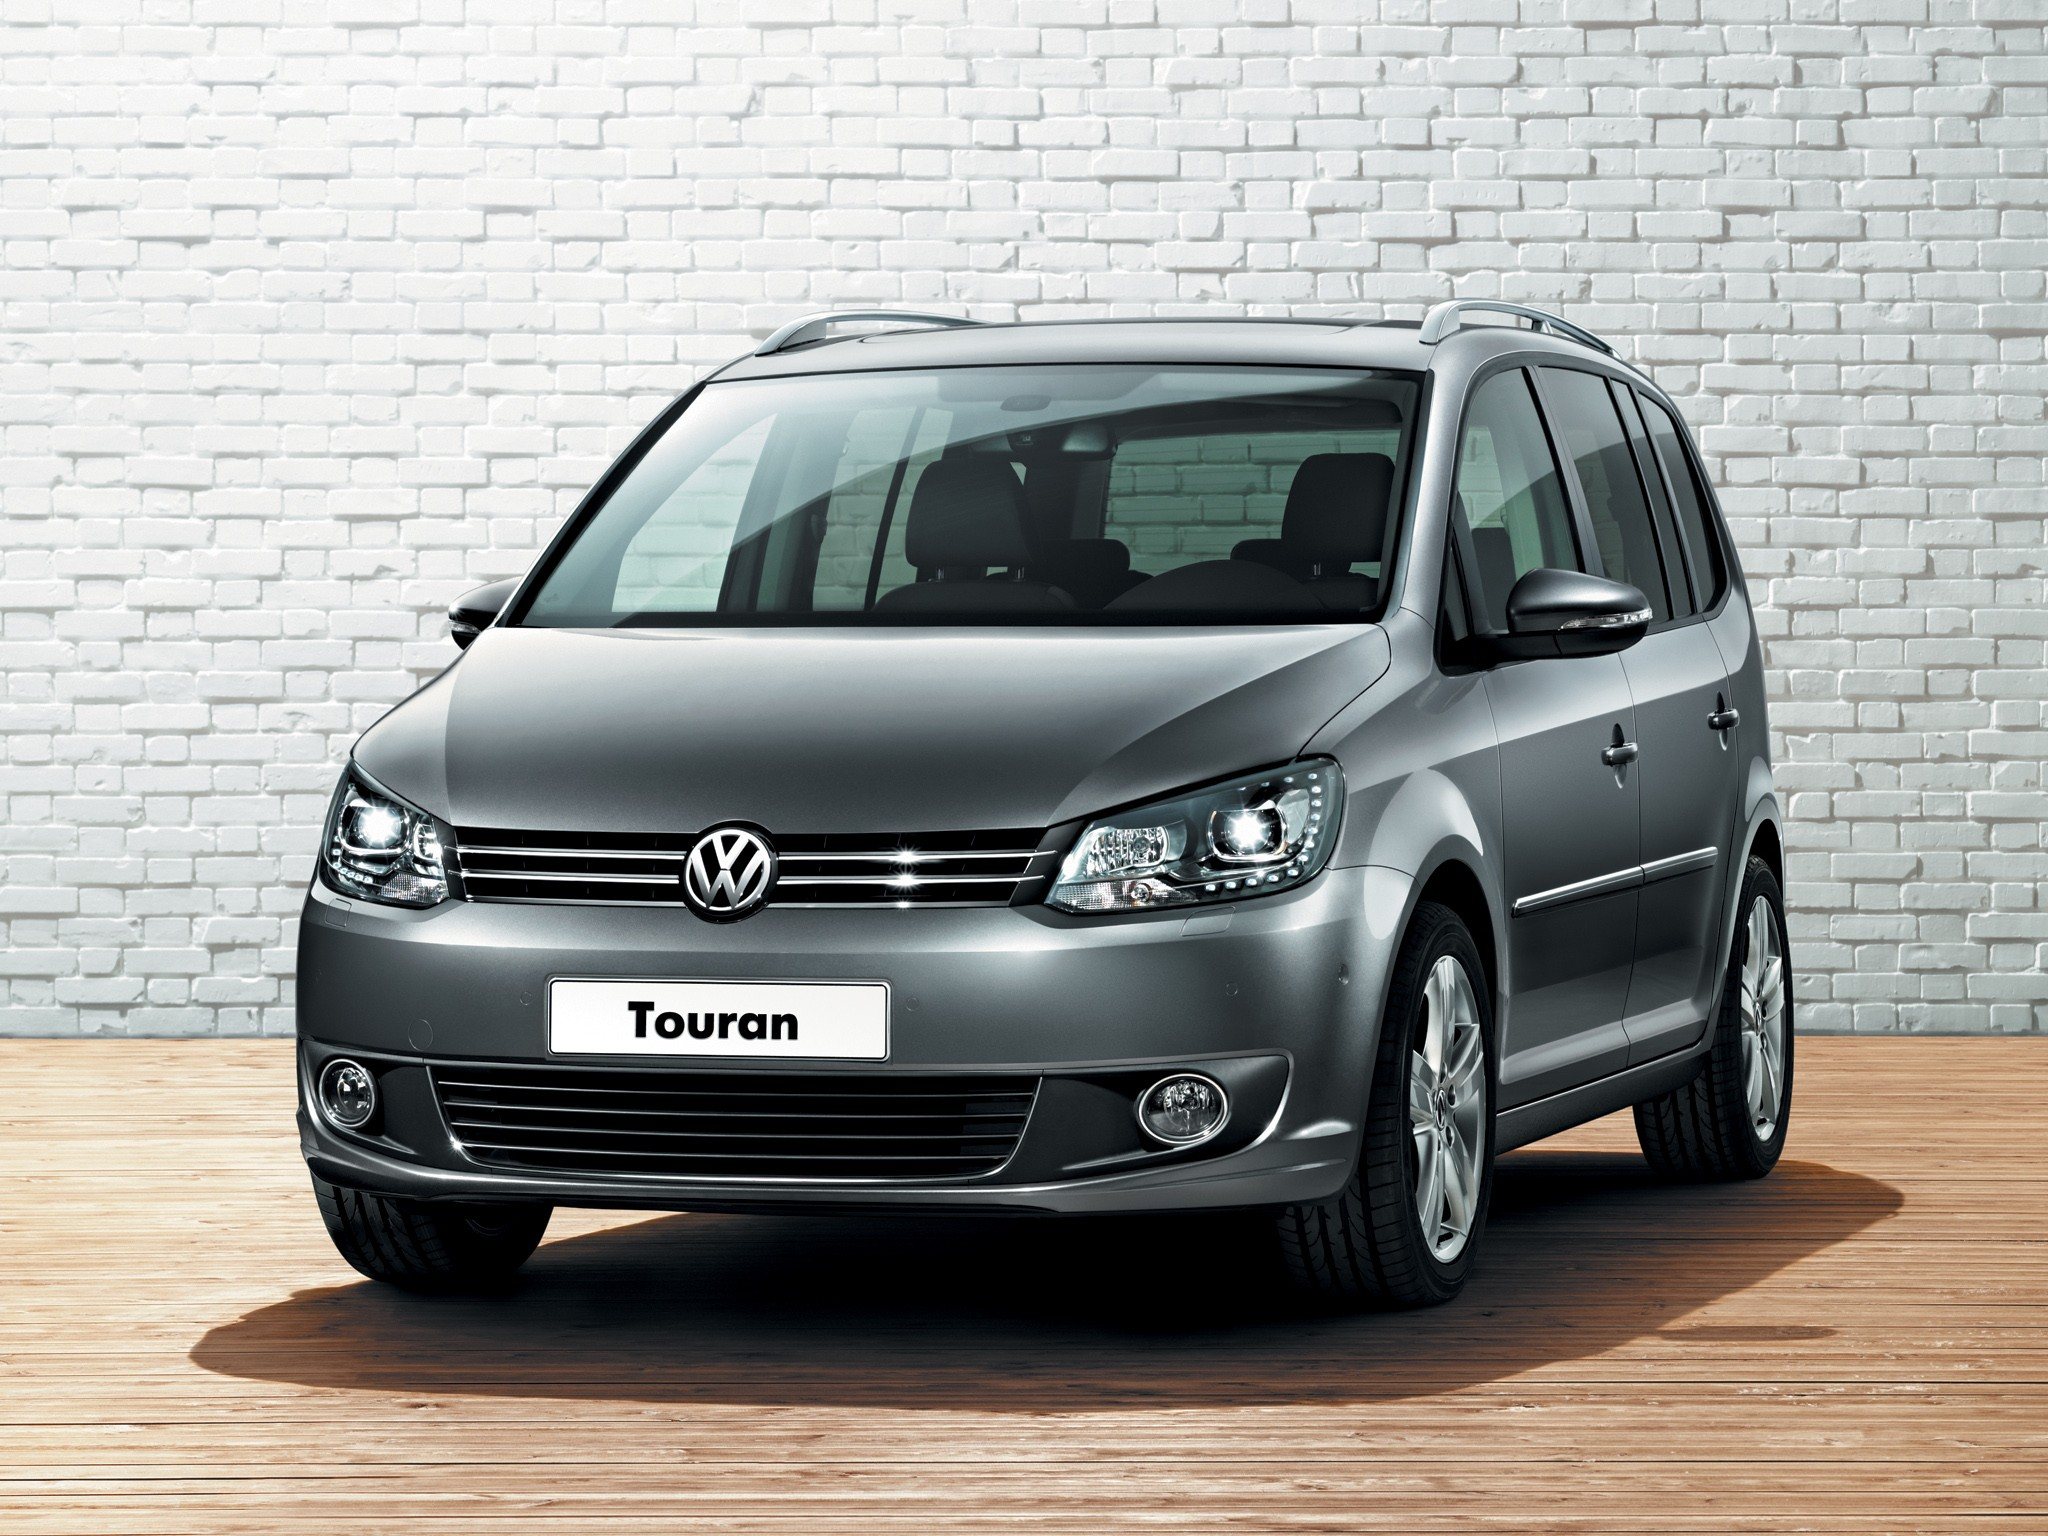 Vw Touran 2018 >> VOLKSWAGEN Touran - 2010, 2011, 2012, 2013, 2014, 2015 - autoevolution